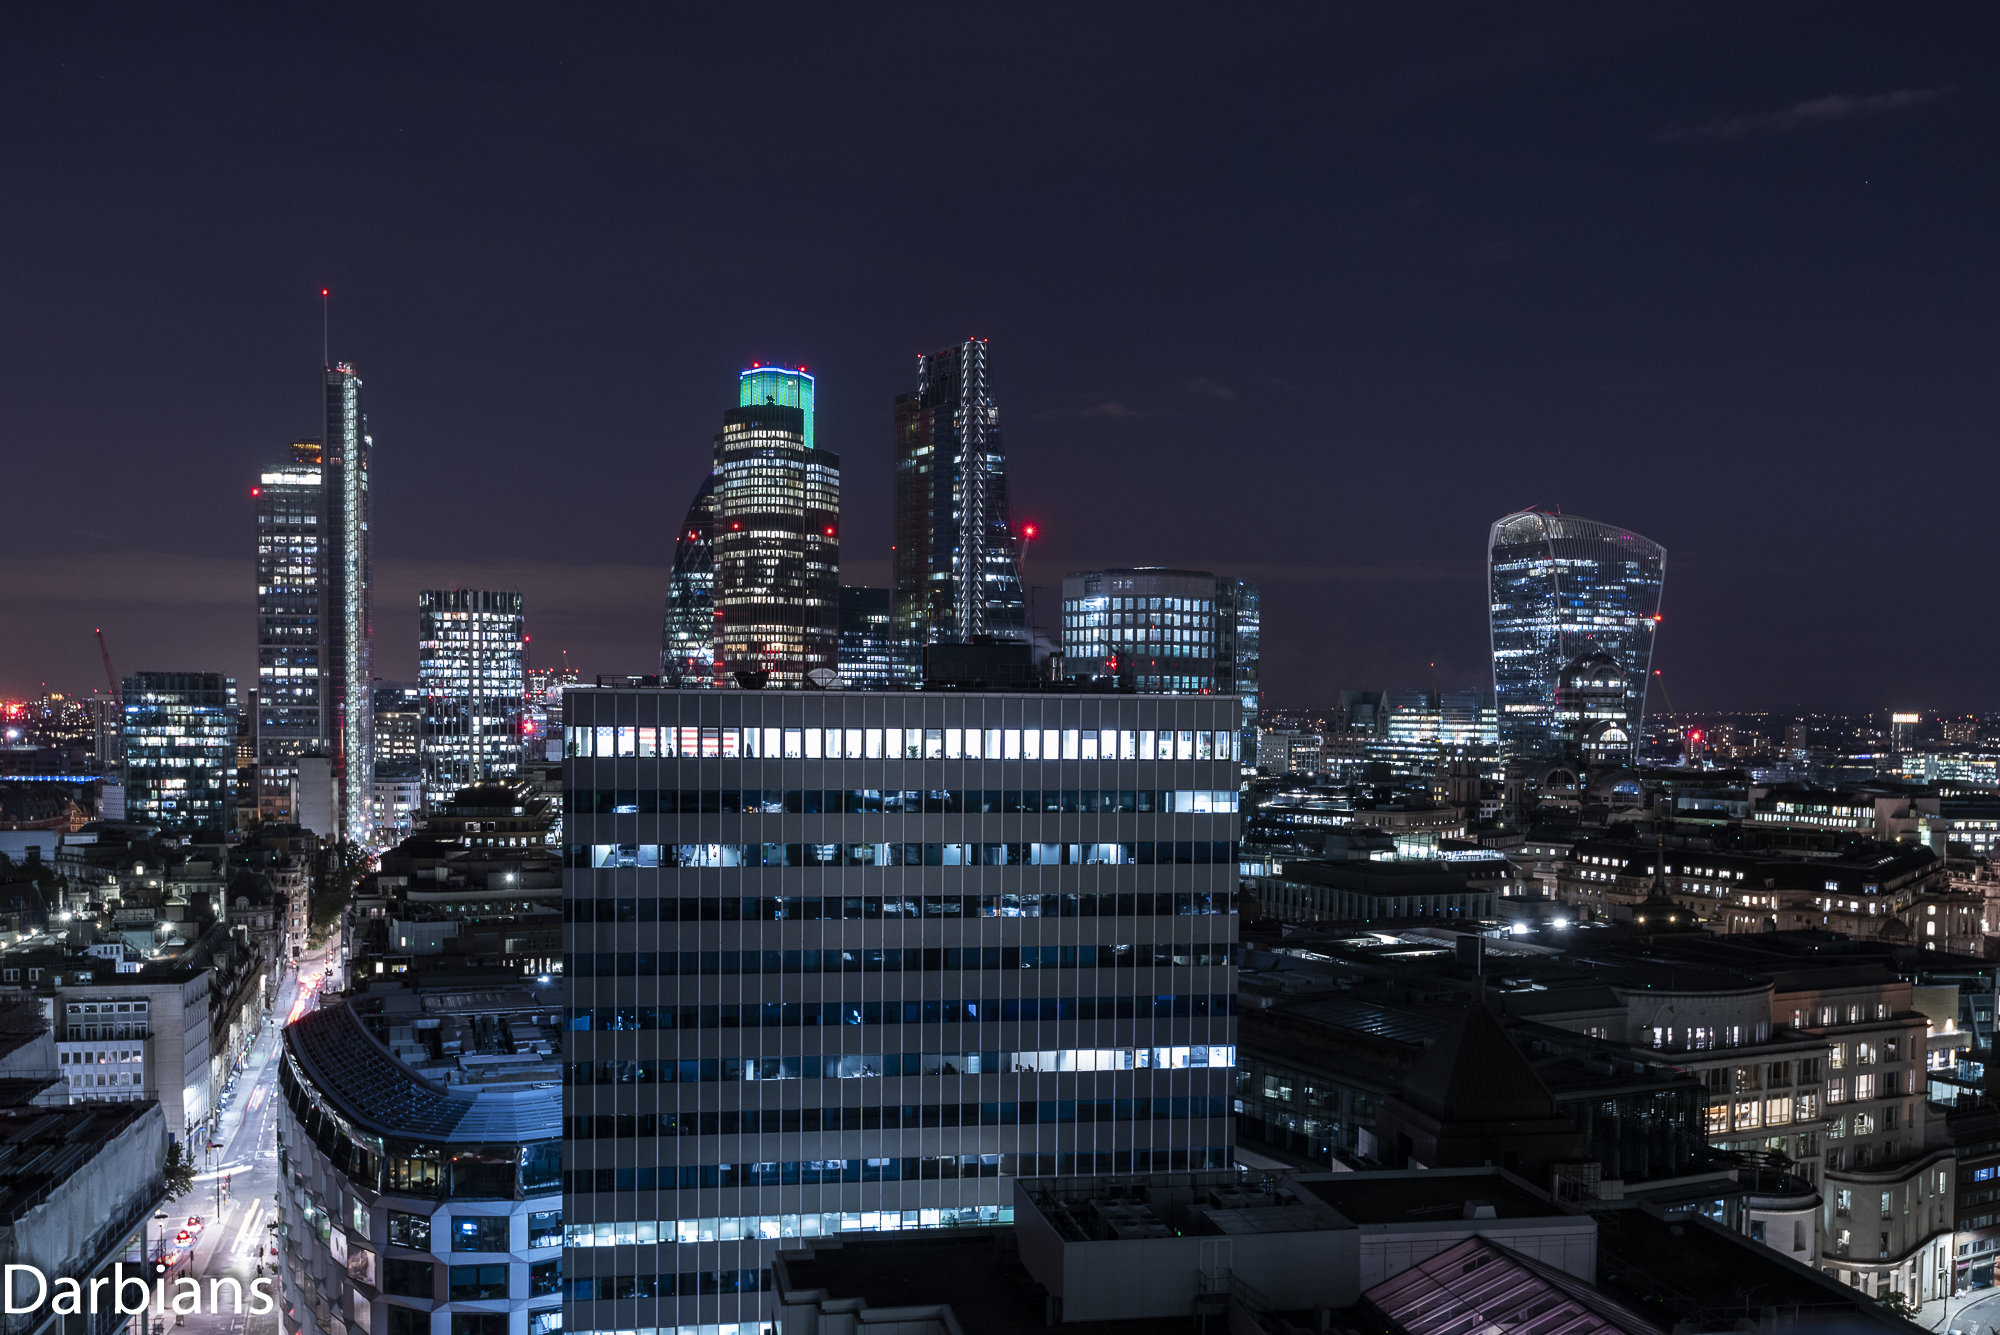 110 Bishopsgate, The Gherkin peaking out behind Tower 42, The Cheesegrater and 1 Angel Court with City Tower in the foreground, not sure why it has a US flag in there.